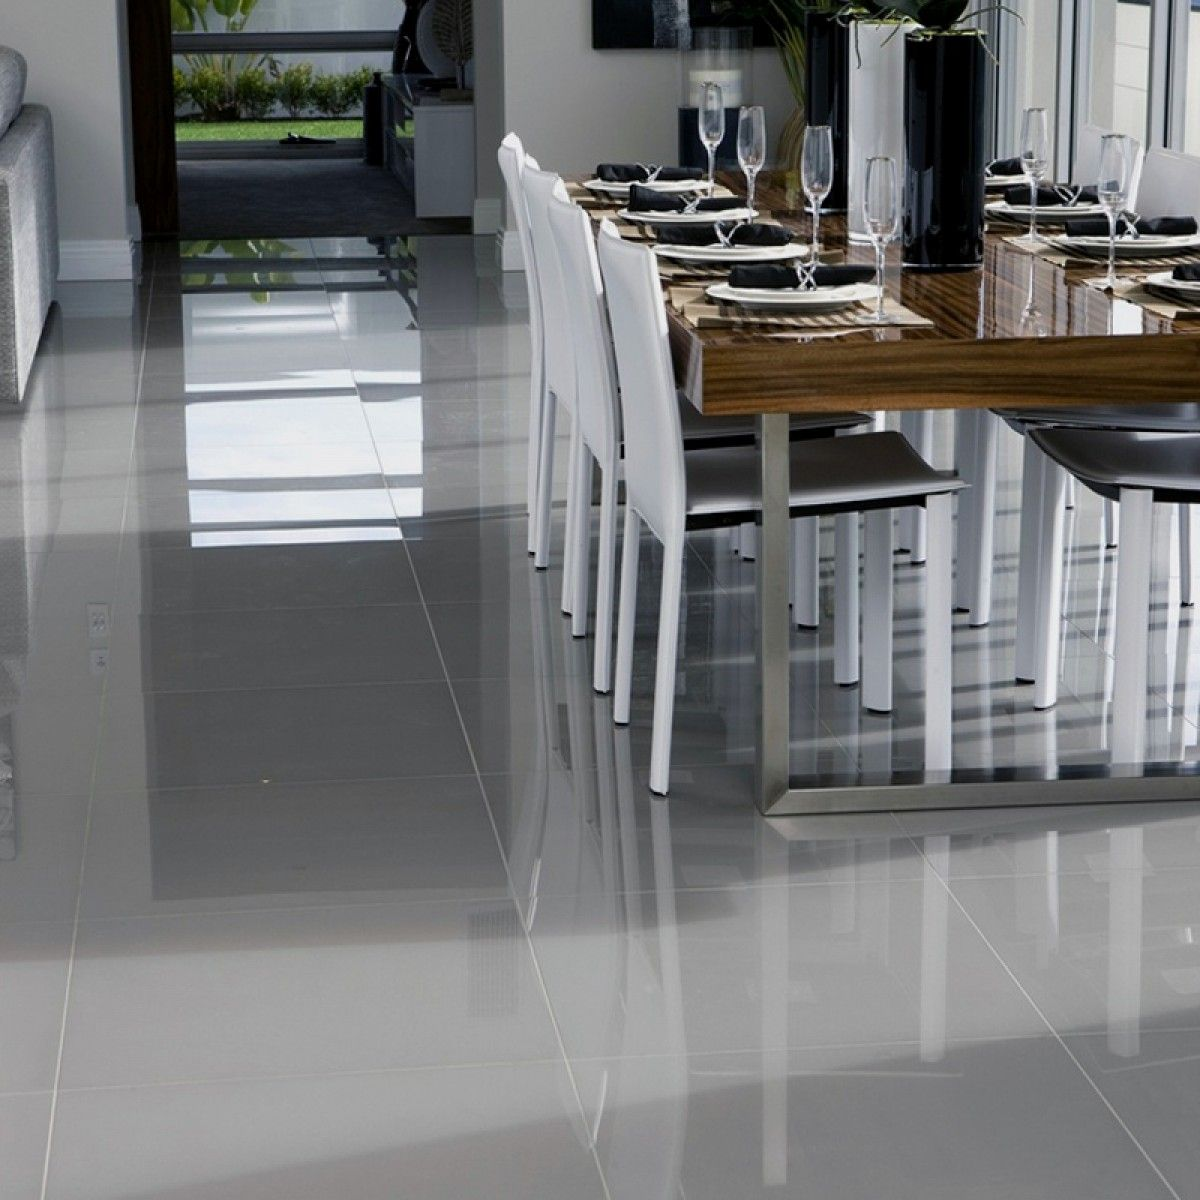 60x60 super polished grey porcelain porcelain gray and kitchens 60x60cm super polished grey porcelain best kitchen flooringtile kitchen floorstile dailygadgetfo Images